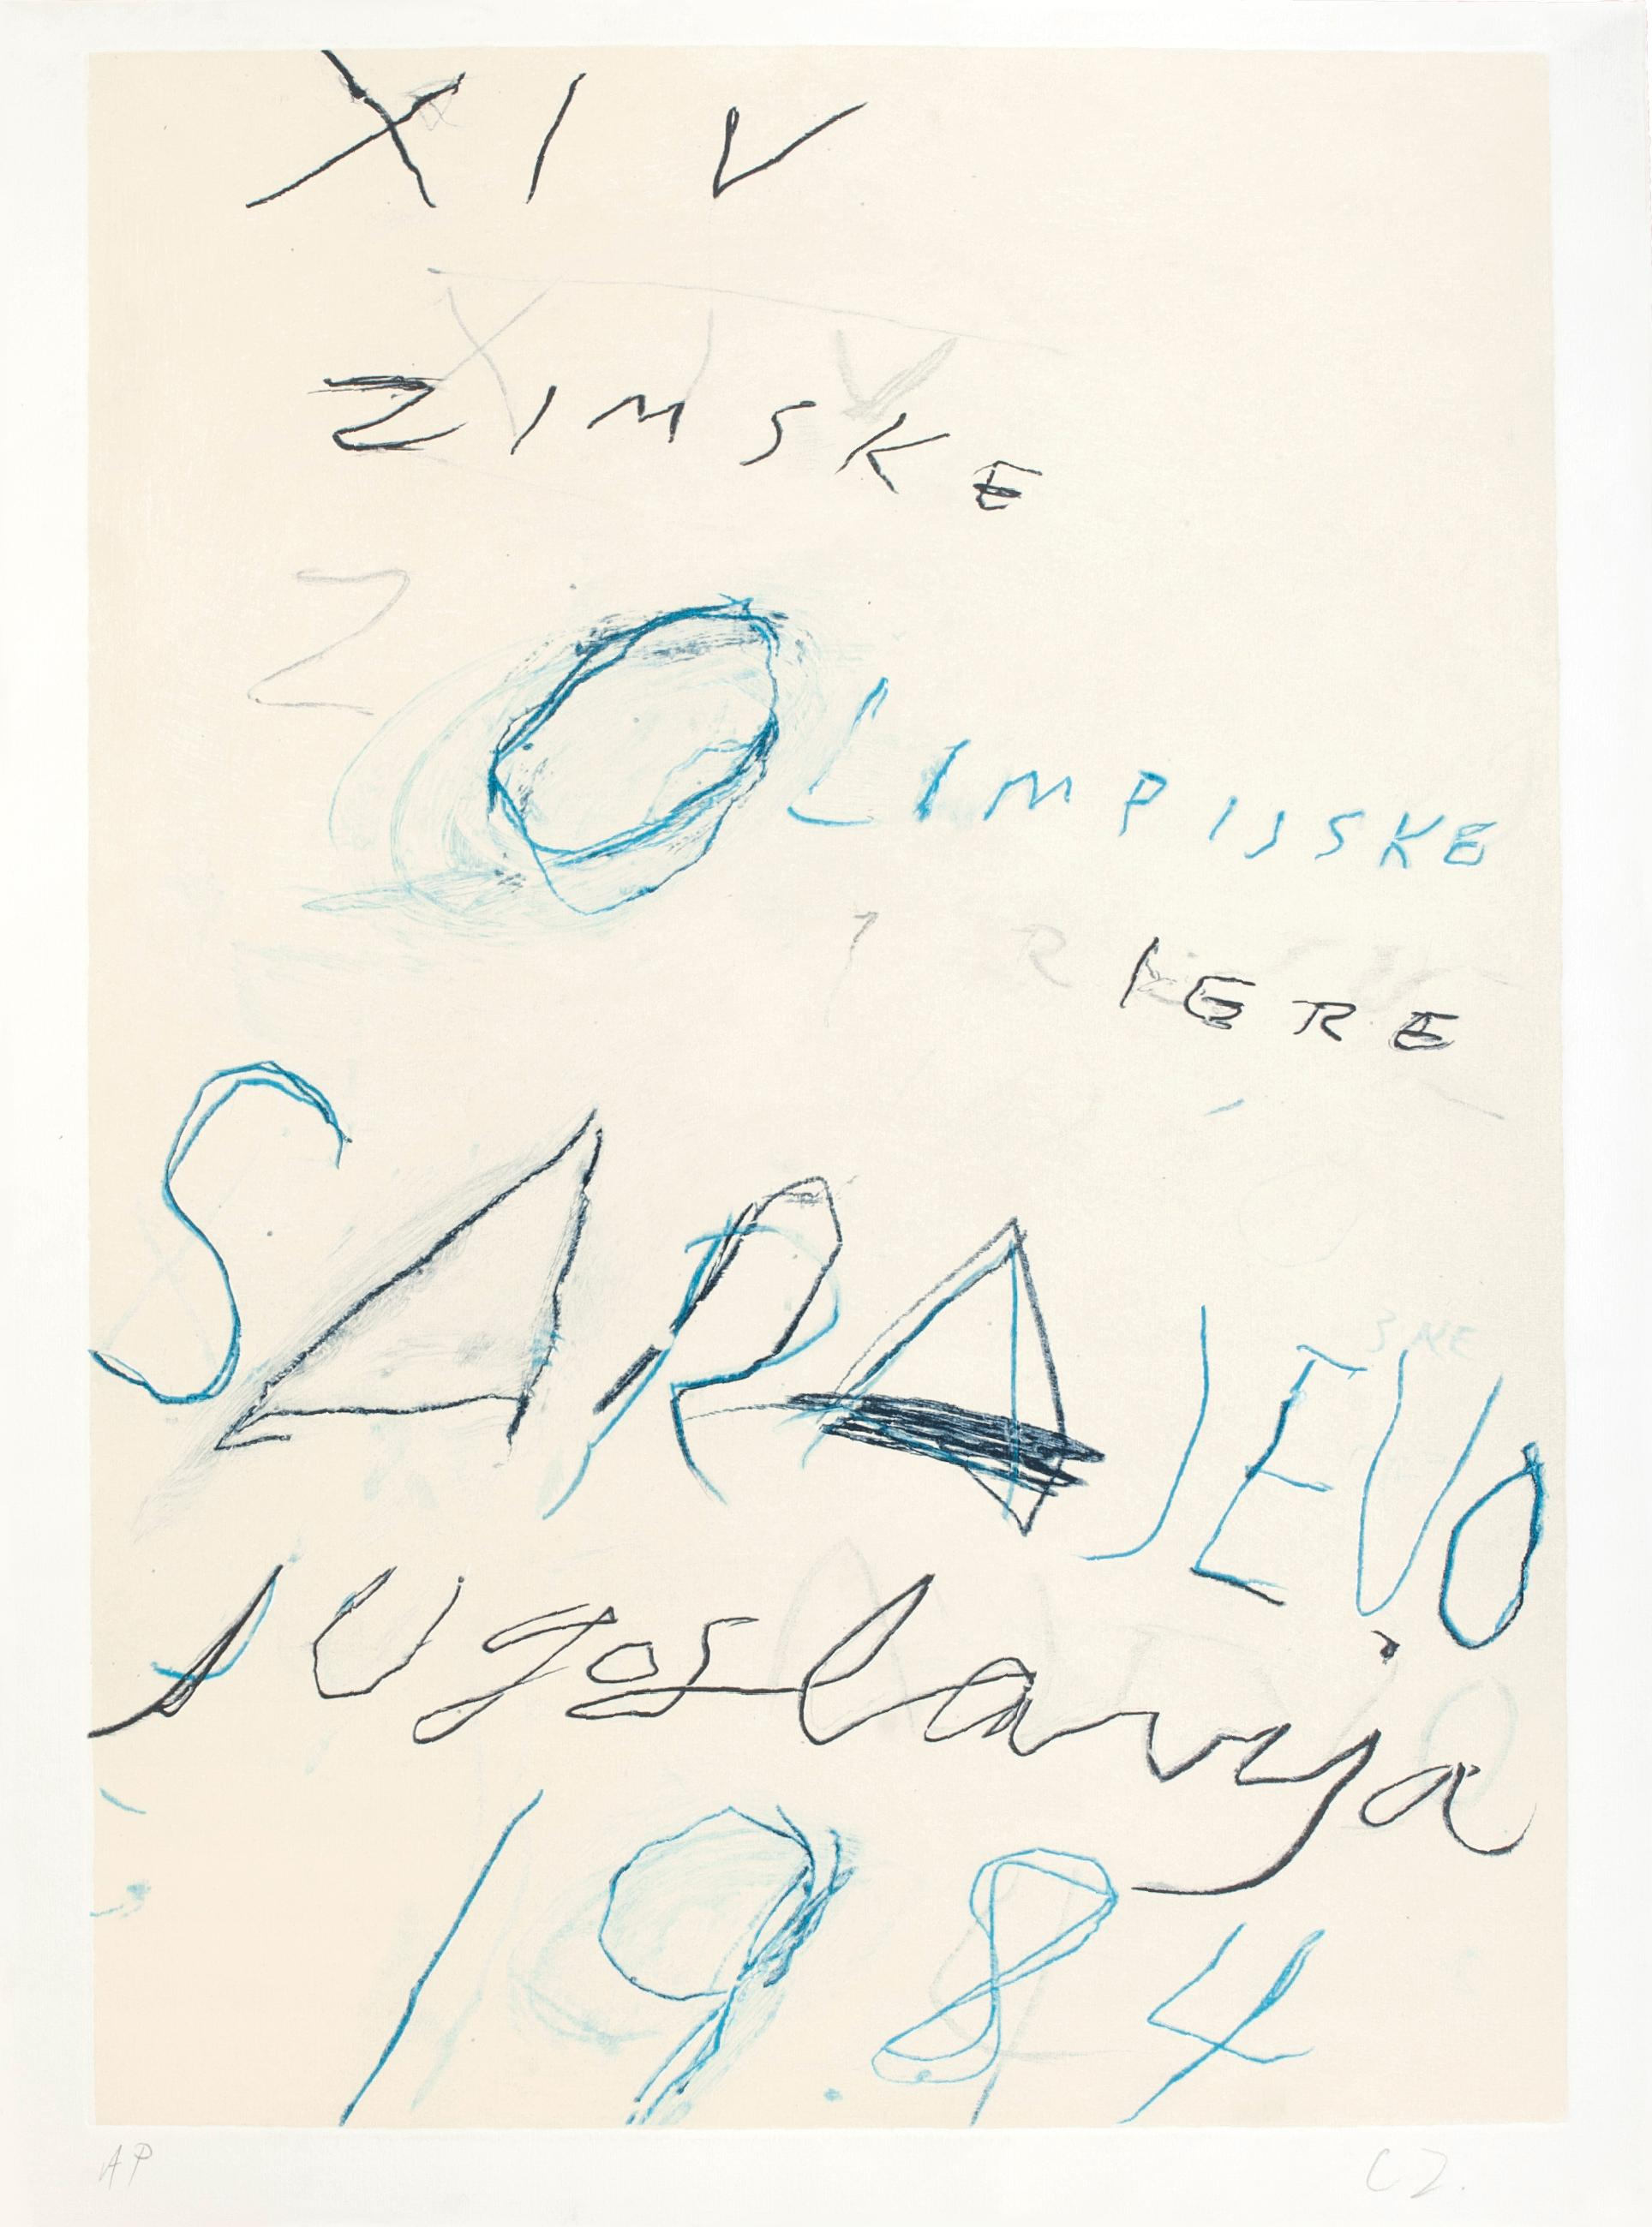 Untitled - Sarayevo Winter Olympic Games - Original Mixed Media by Twombly 1984